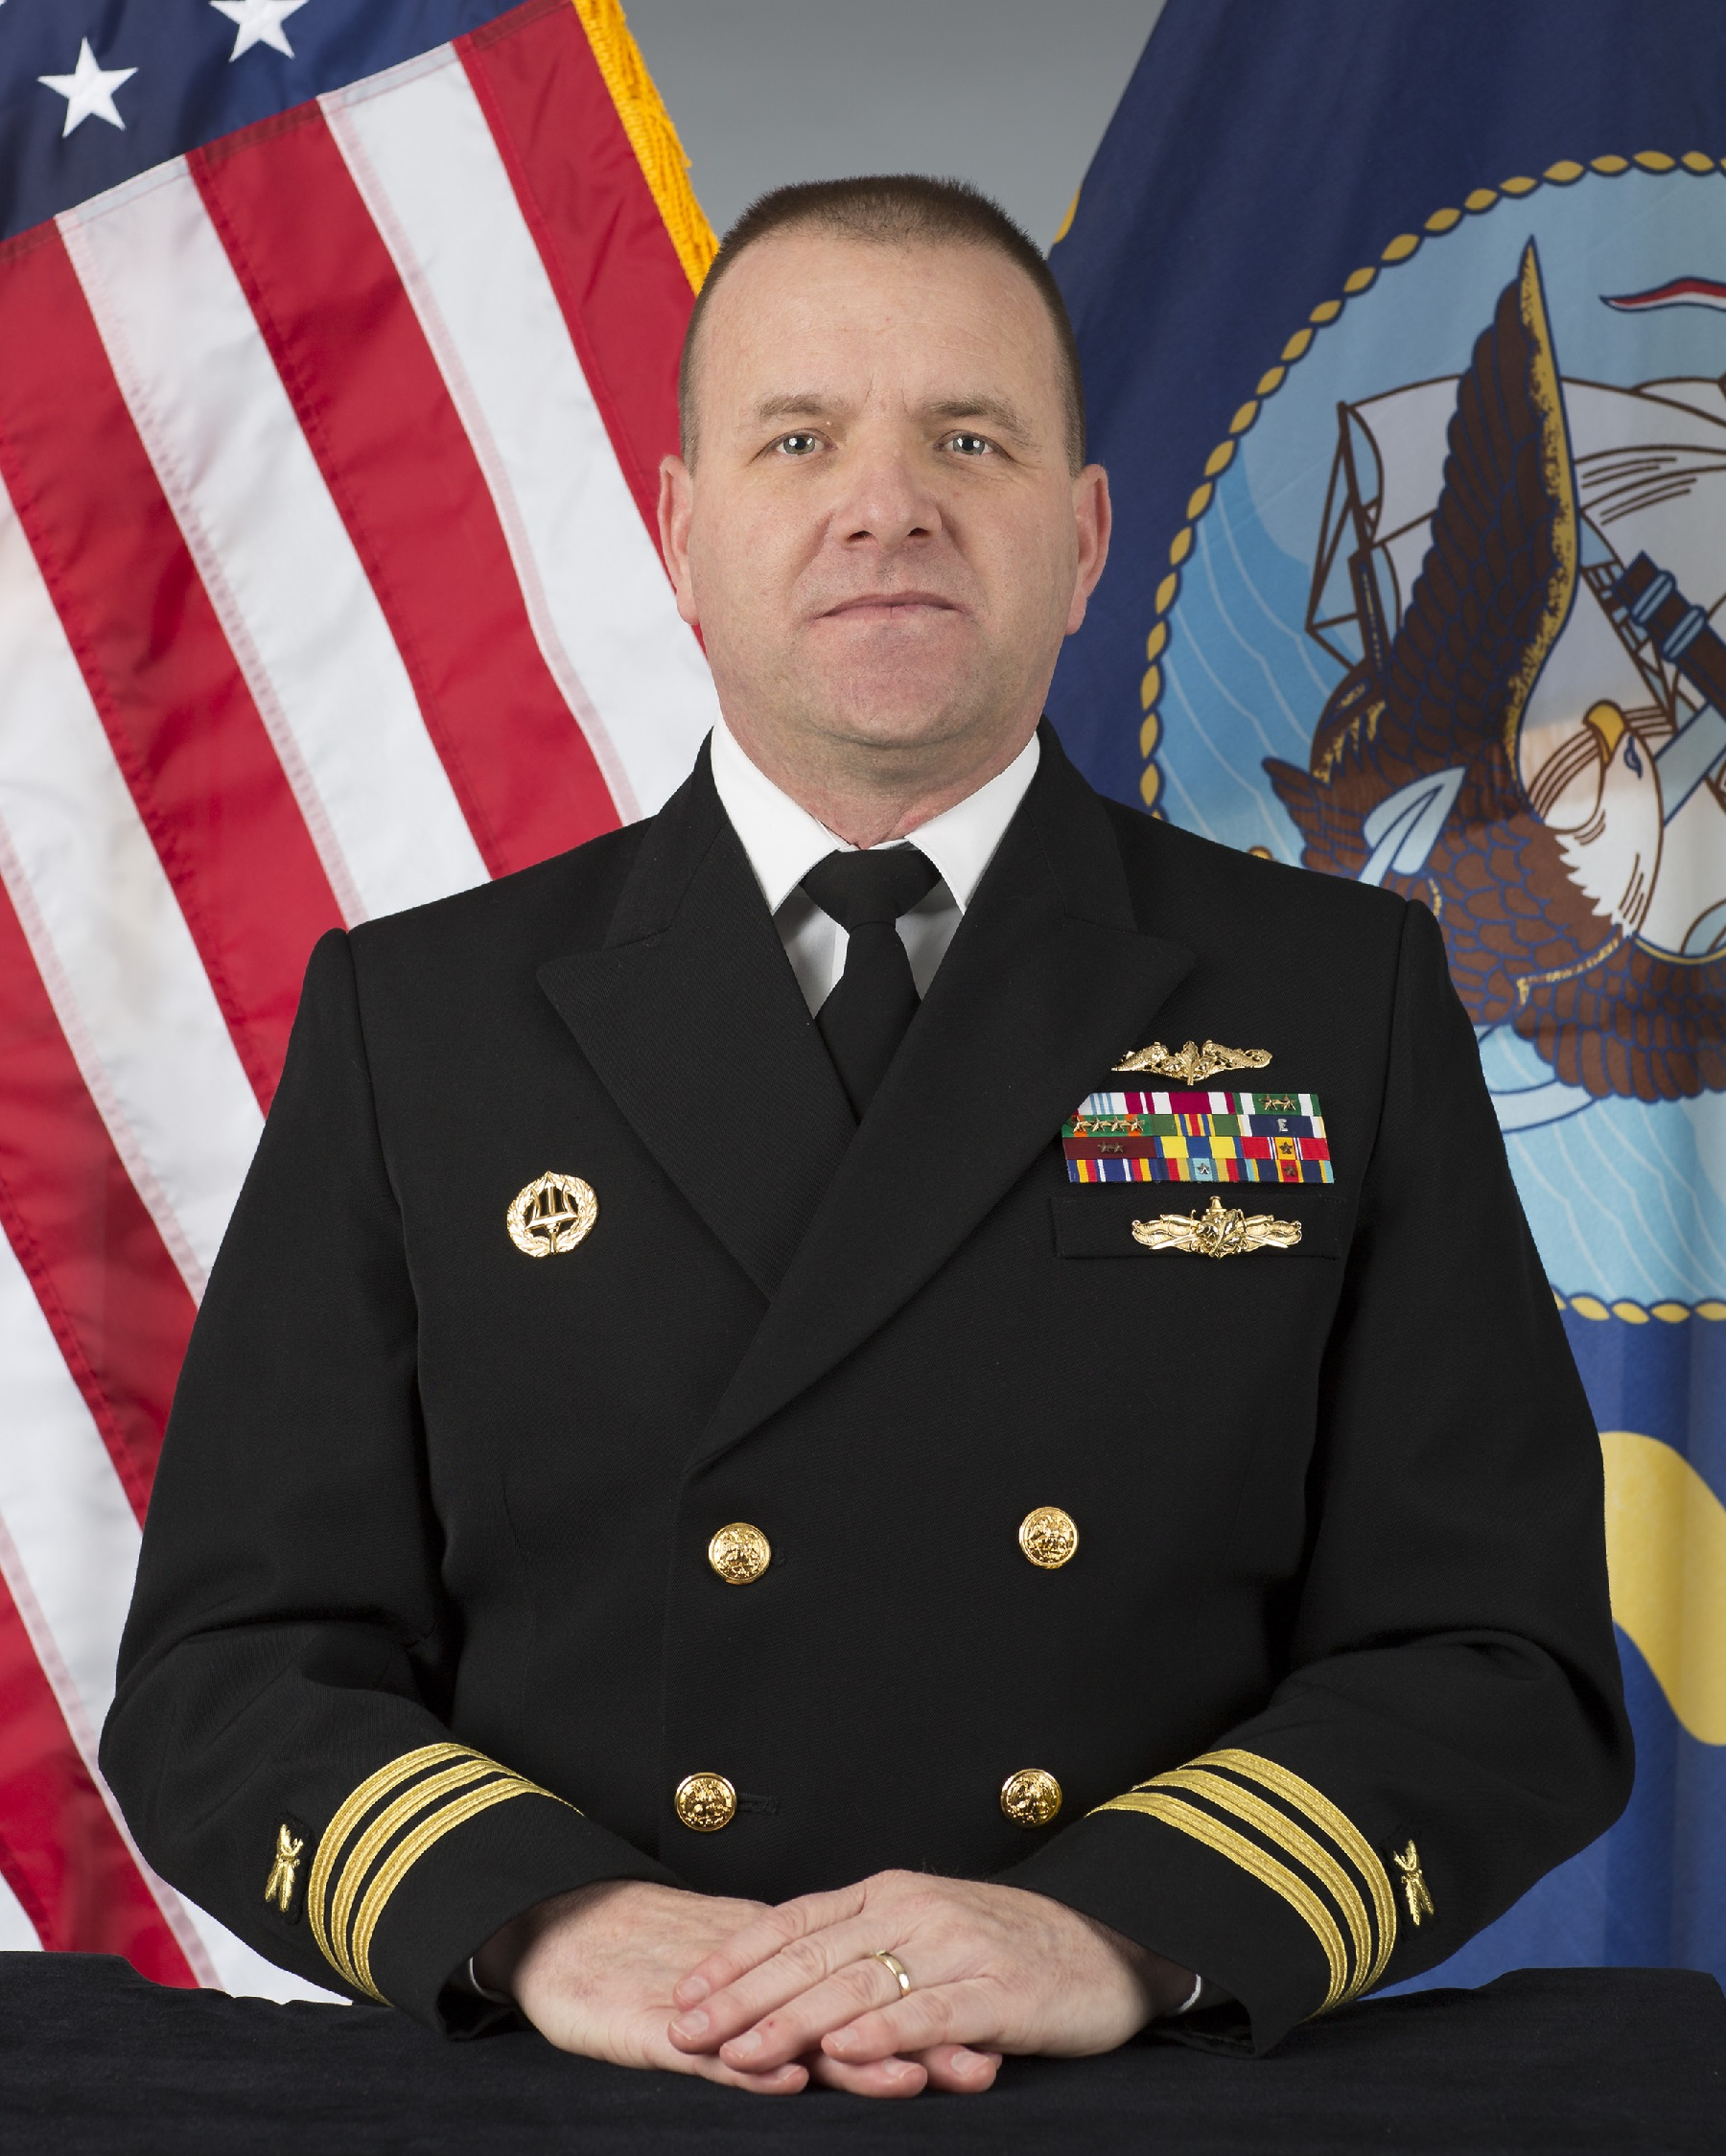 a native of savannah georgia commander demeyer enlisted in the navy in 1986 completing three enlisted tours prior to earning a bachelor of science degree